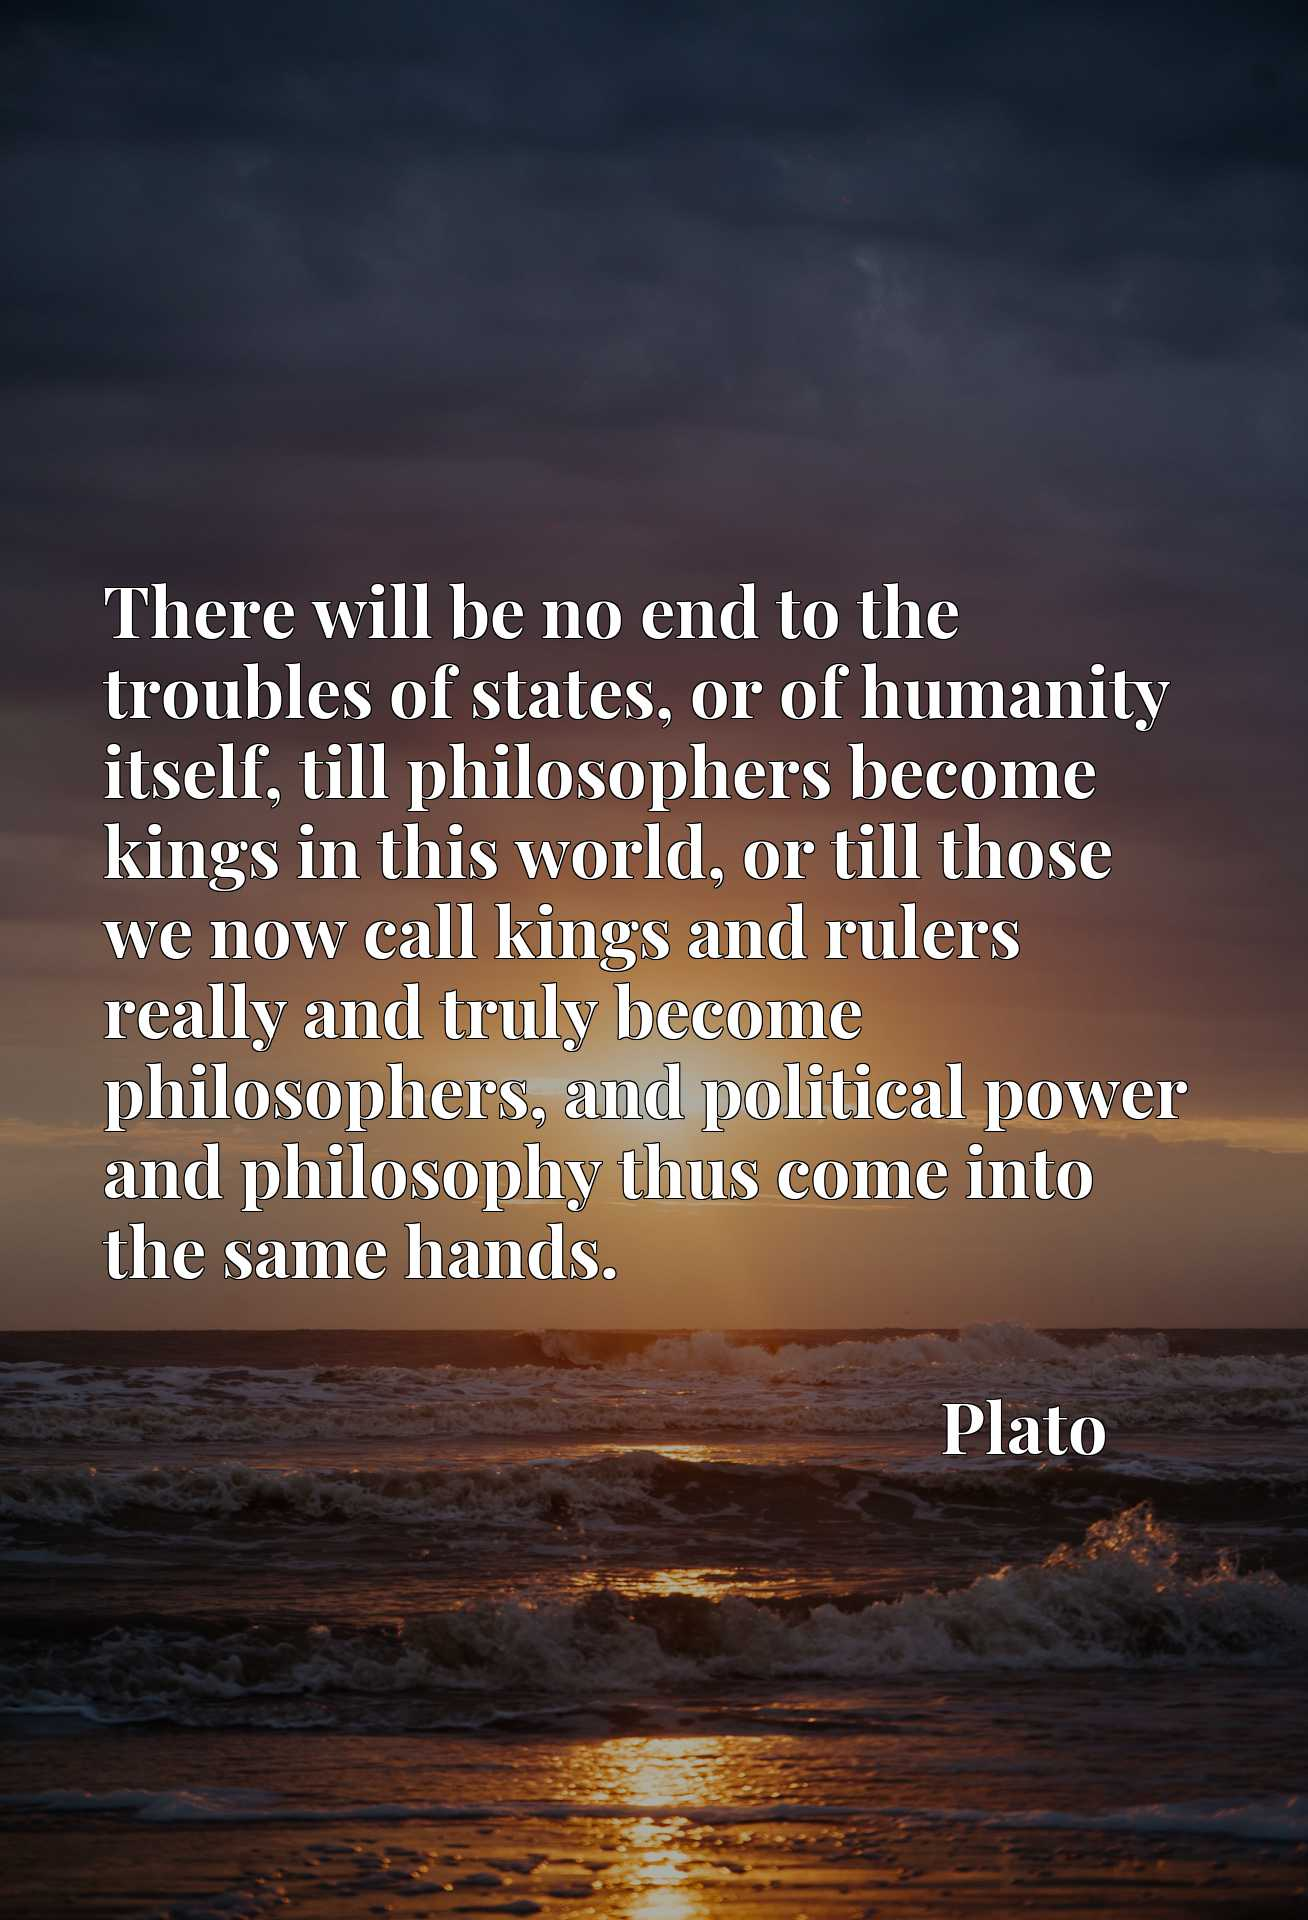 There will be no end to the troubles of states, or of humanity itself, till philosophers become kings in this world, or till those we now call kings and rulers really and truly become philosophers, and political power and philosophy thus come into the same hands.